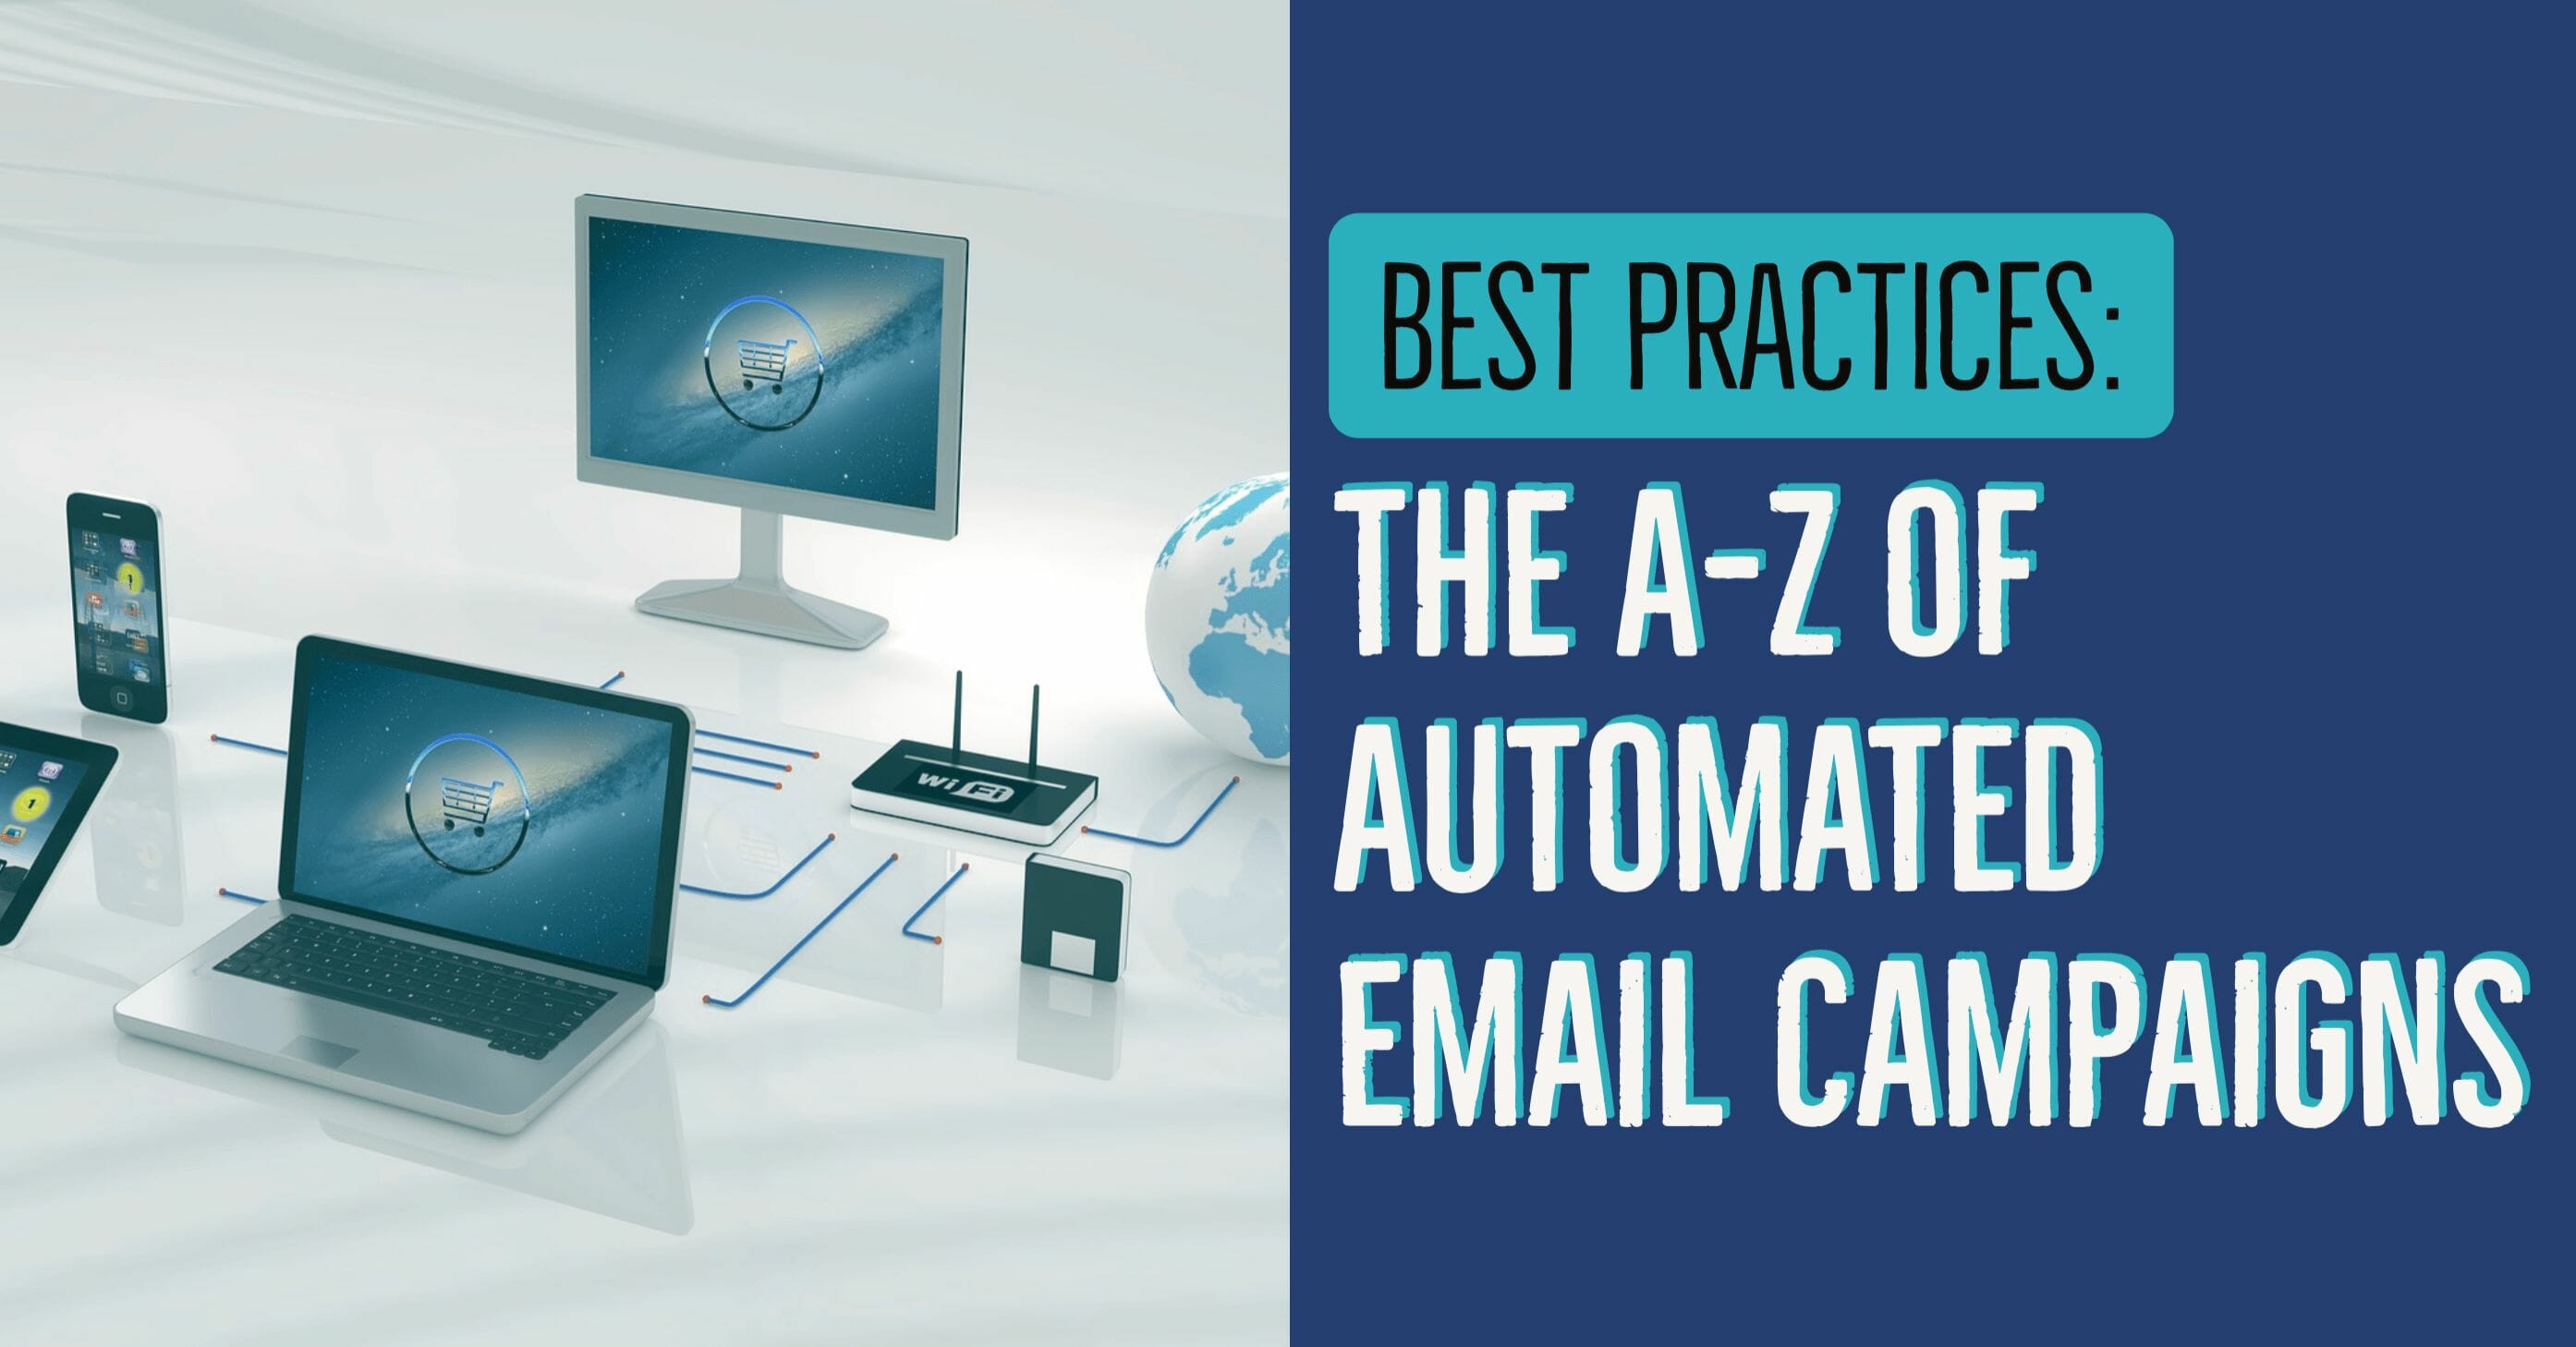 The A-Z of Automated Email Campaigns 43